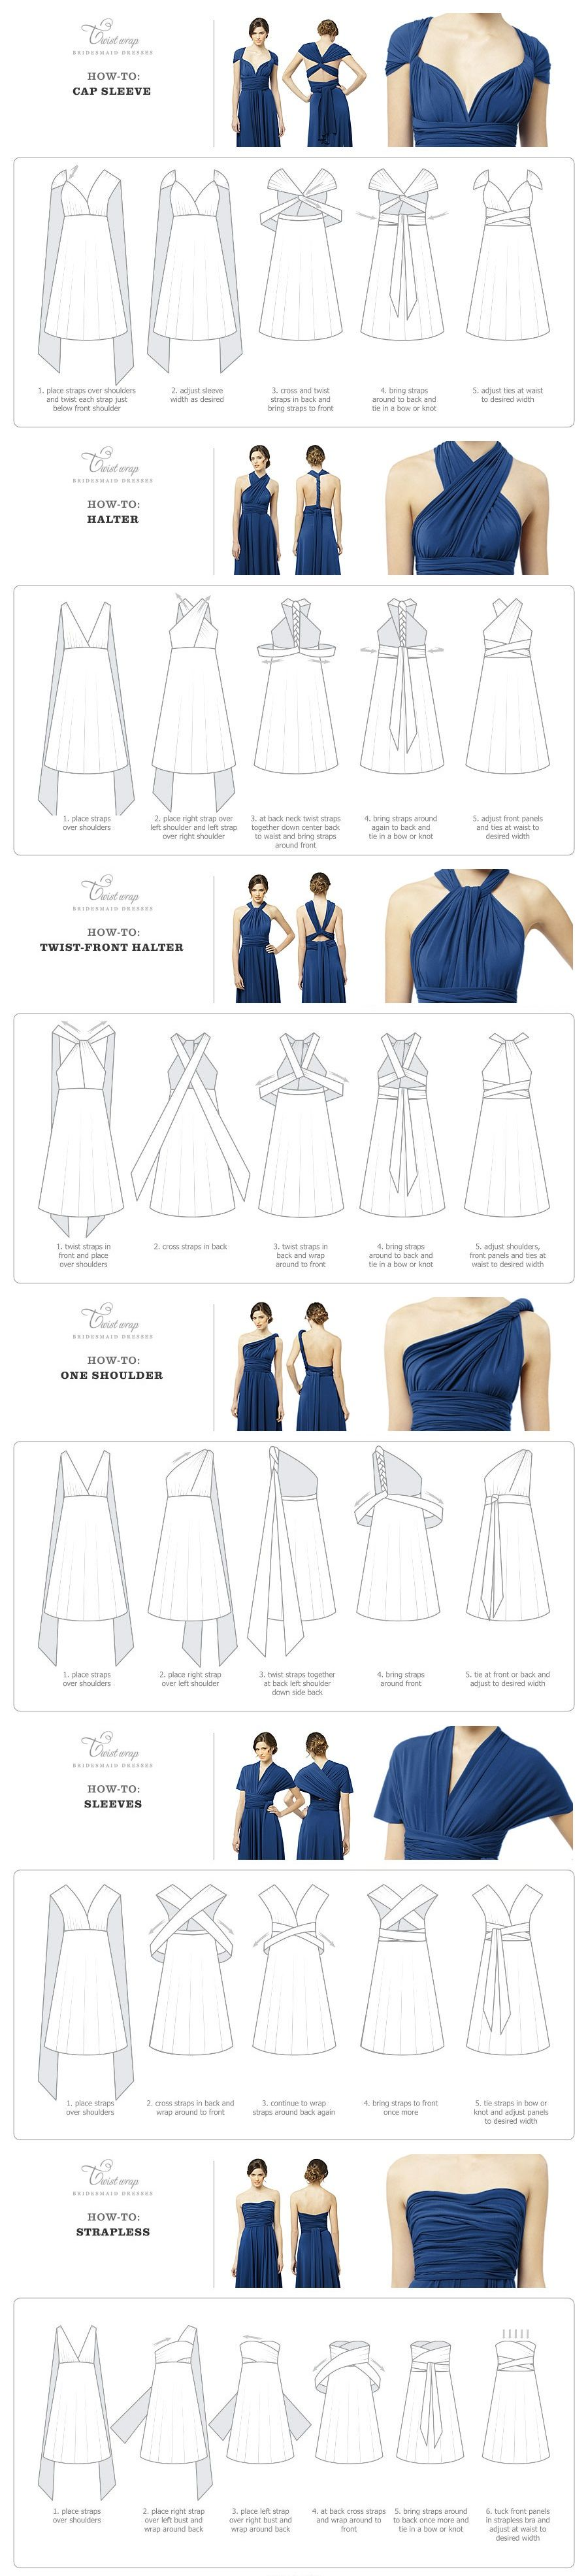 Twist wrap dress how to wear instructions multiway convertible twist wrap dress how to wear instructions multiway convertible multiway bridesmaid dresscheap ombrellifo Image collections